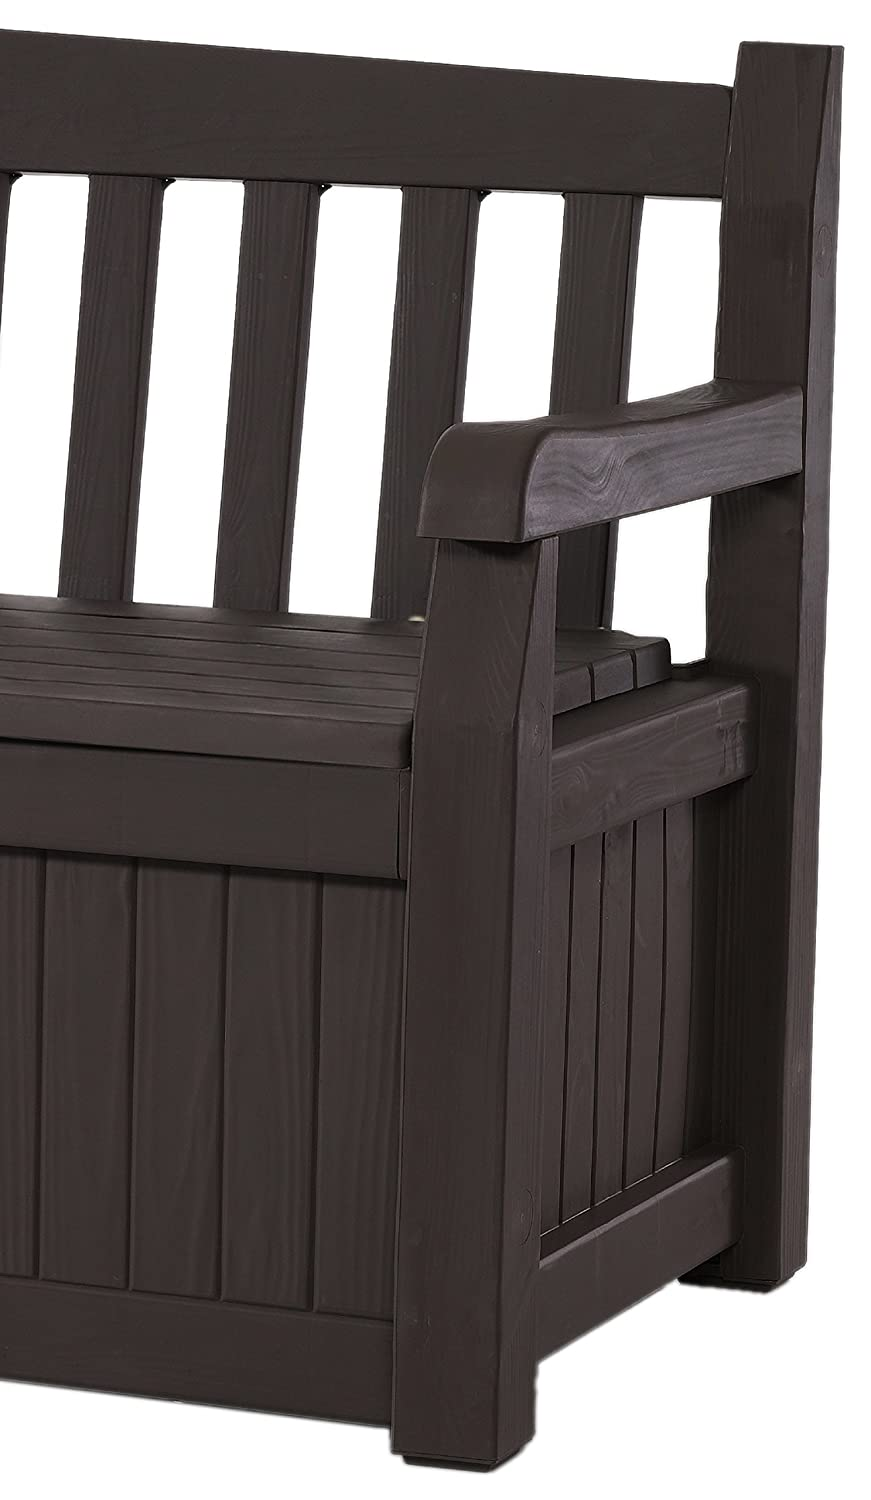 keter eden 70 gal all weather outdoor patio storage bench. Black Bedroom Furniture Sets. Home Design Ideas